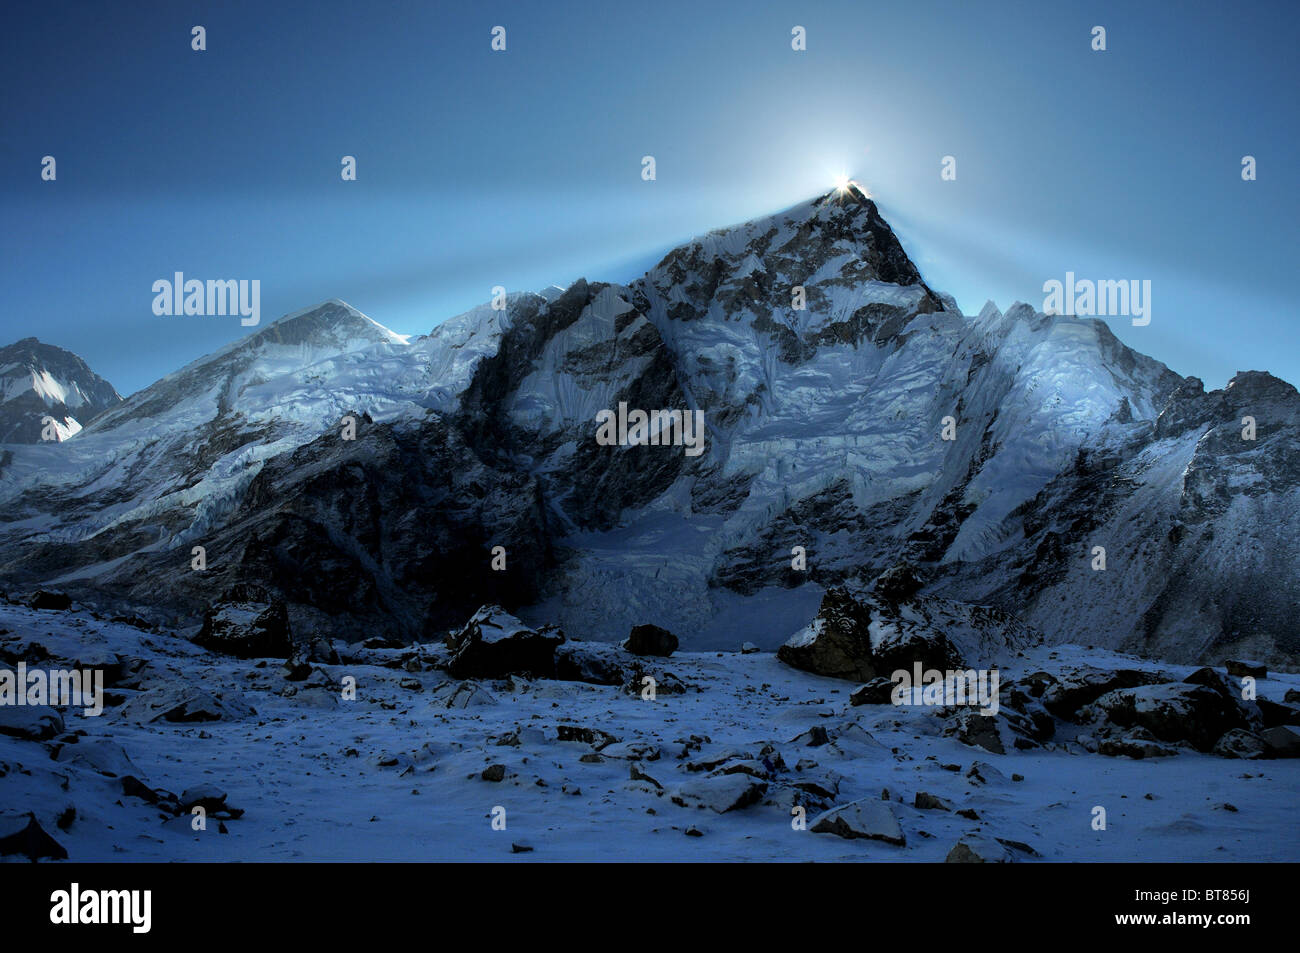 sunrise-over-mount-everest-seen-from-gorak-shep-BT856J.jpg